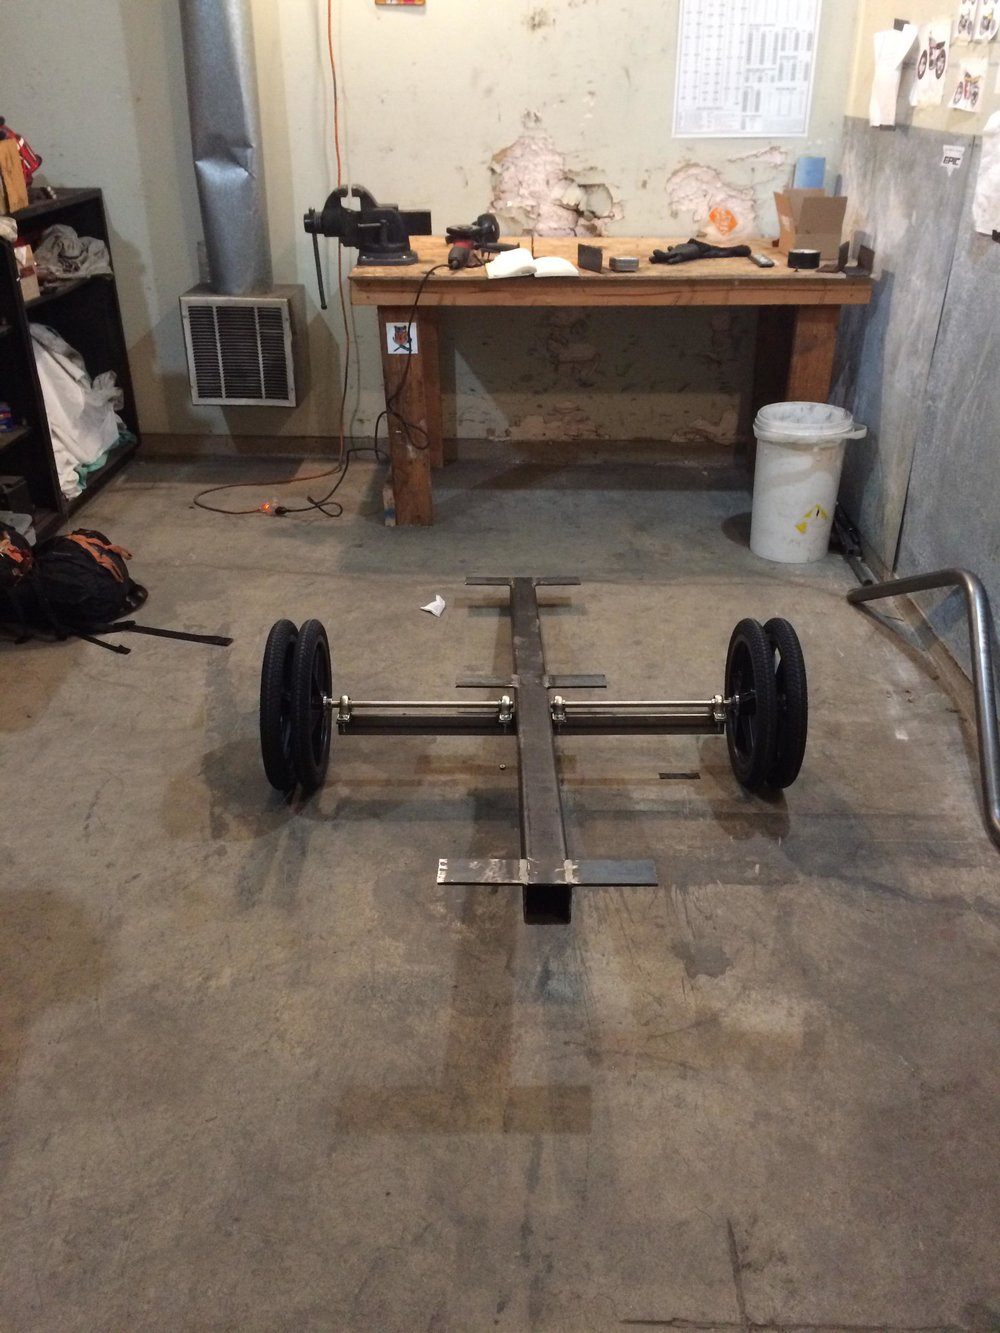 """Doubled-up 12"""" trailer wheels on two separate 5/8"""" stainless steel axles sit between four pillow blocks, giving the steel frame a durable means for mobility"""